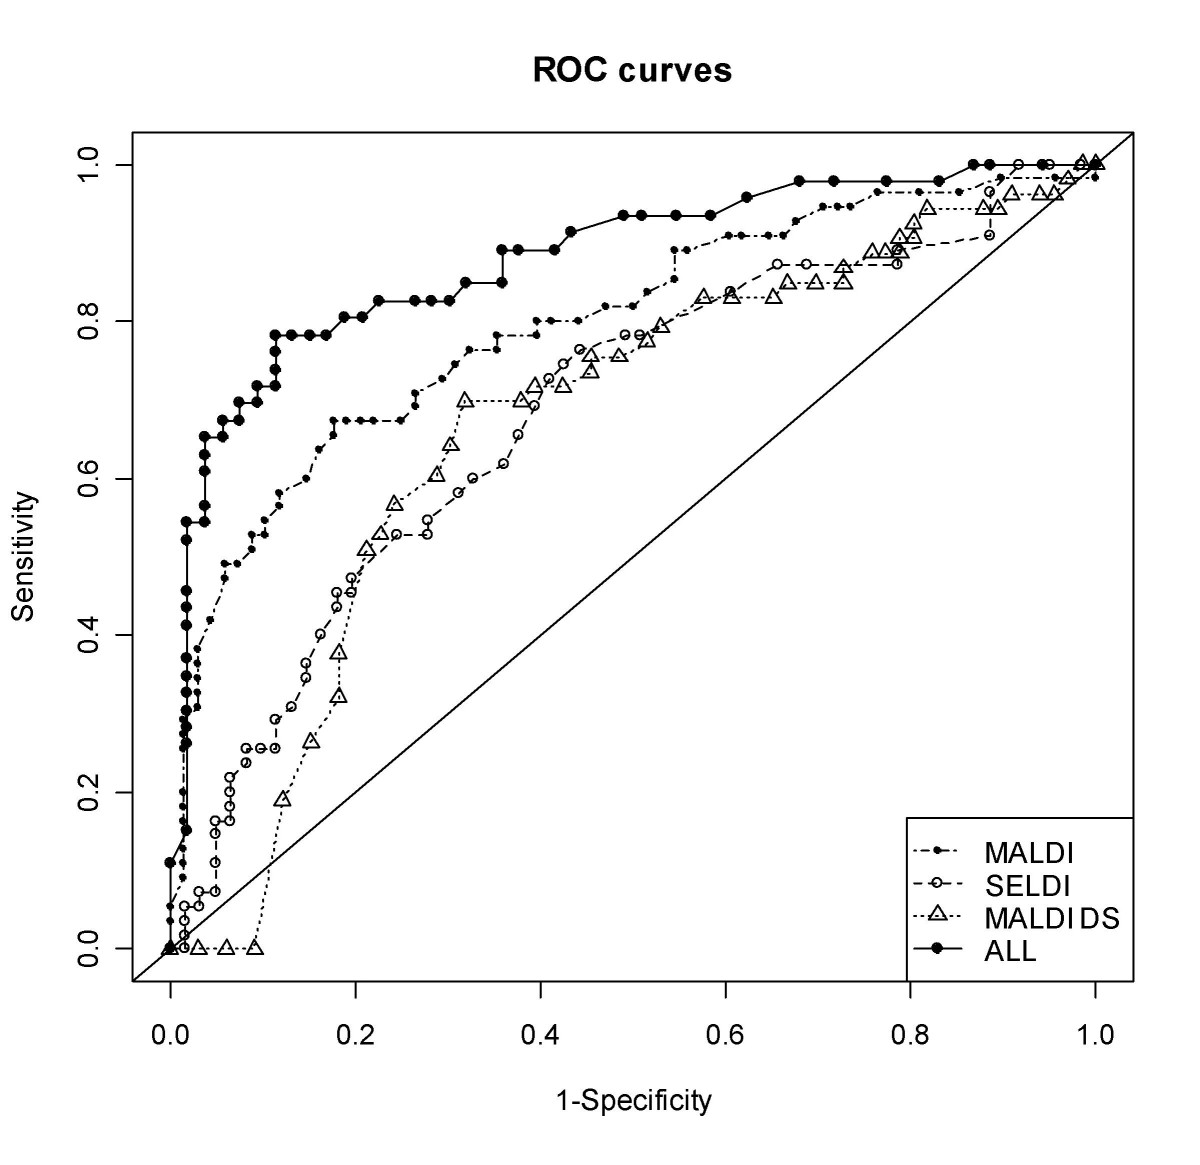 http://static-content.springer.com/image/art%3A10.1186%2F1477-5956-6-19/MediaObjects/12953_2008_Article_87_Fig5_HTML.jpg